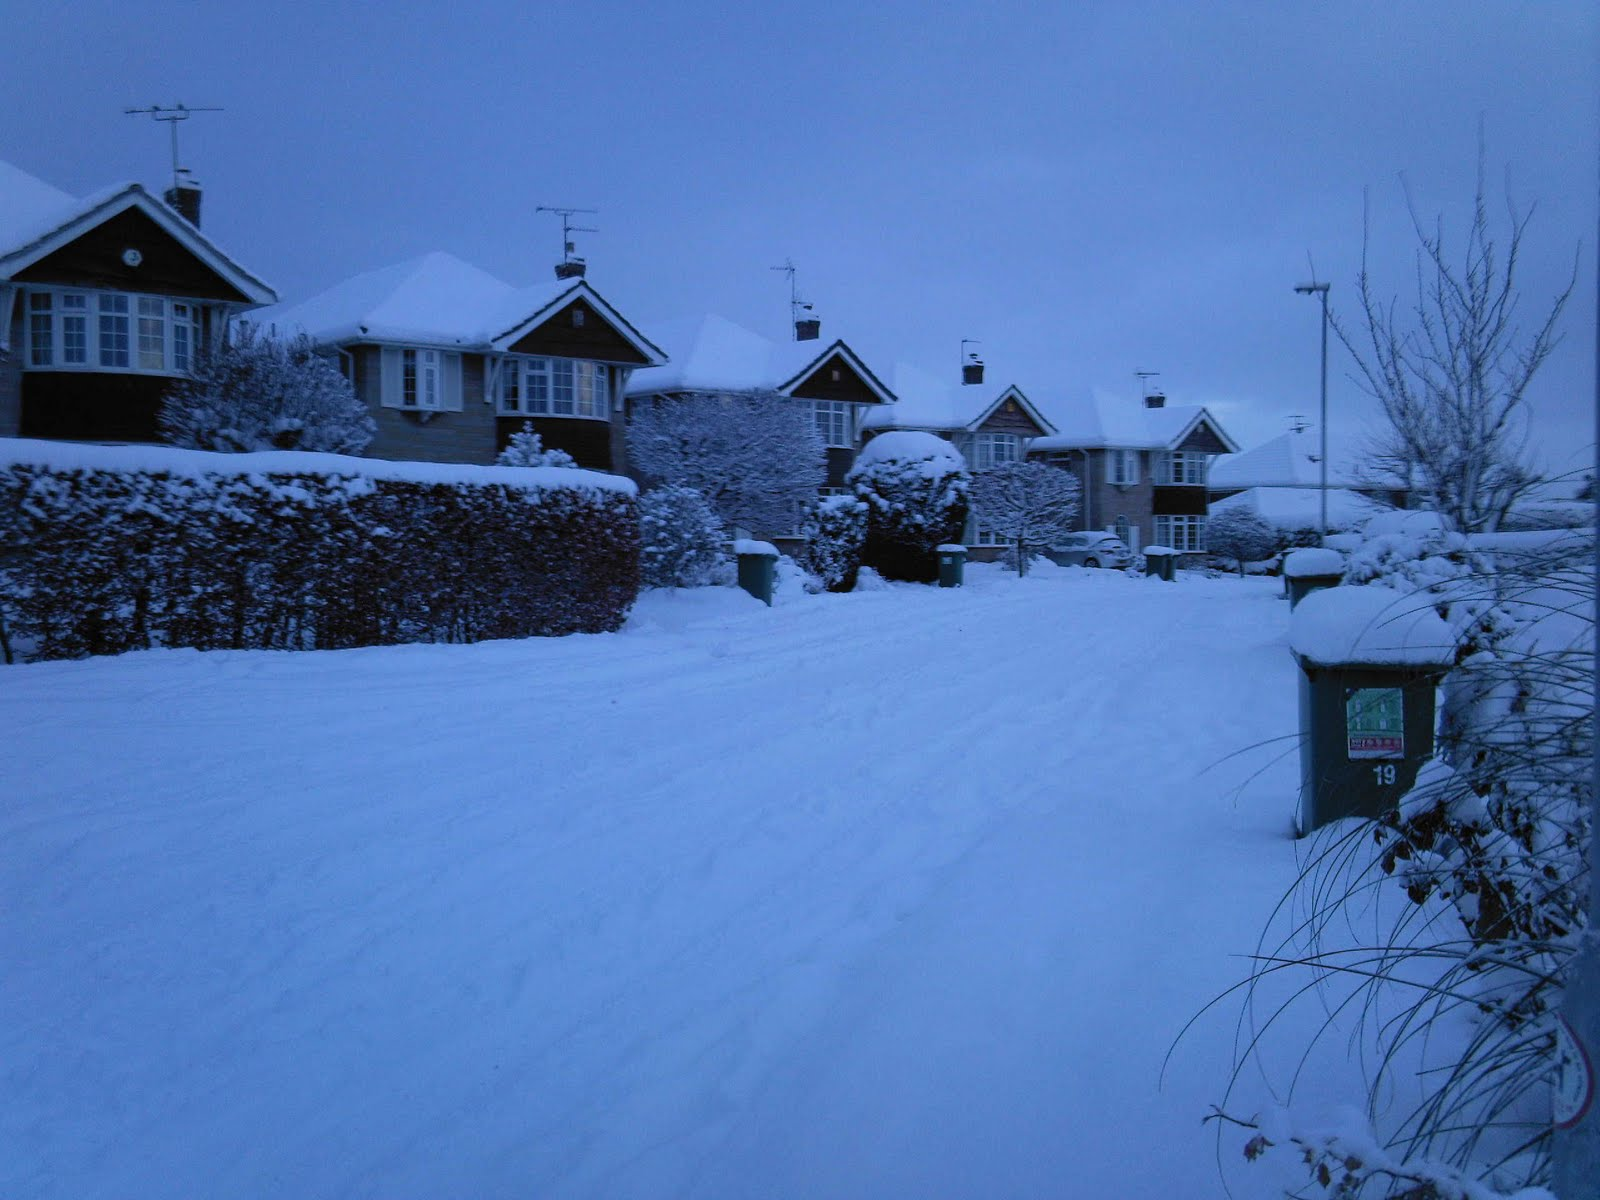 justins blog really bad snow in wetherby